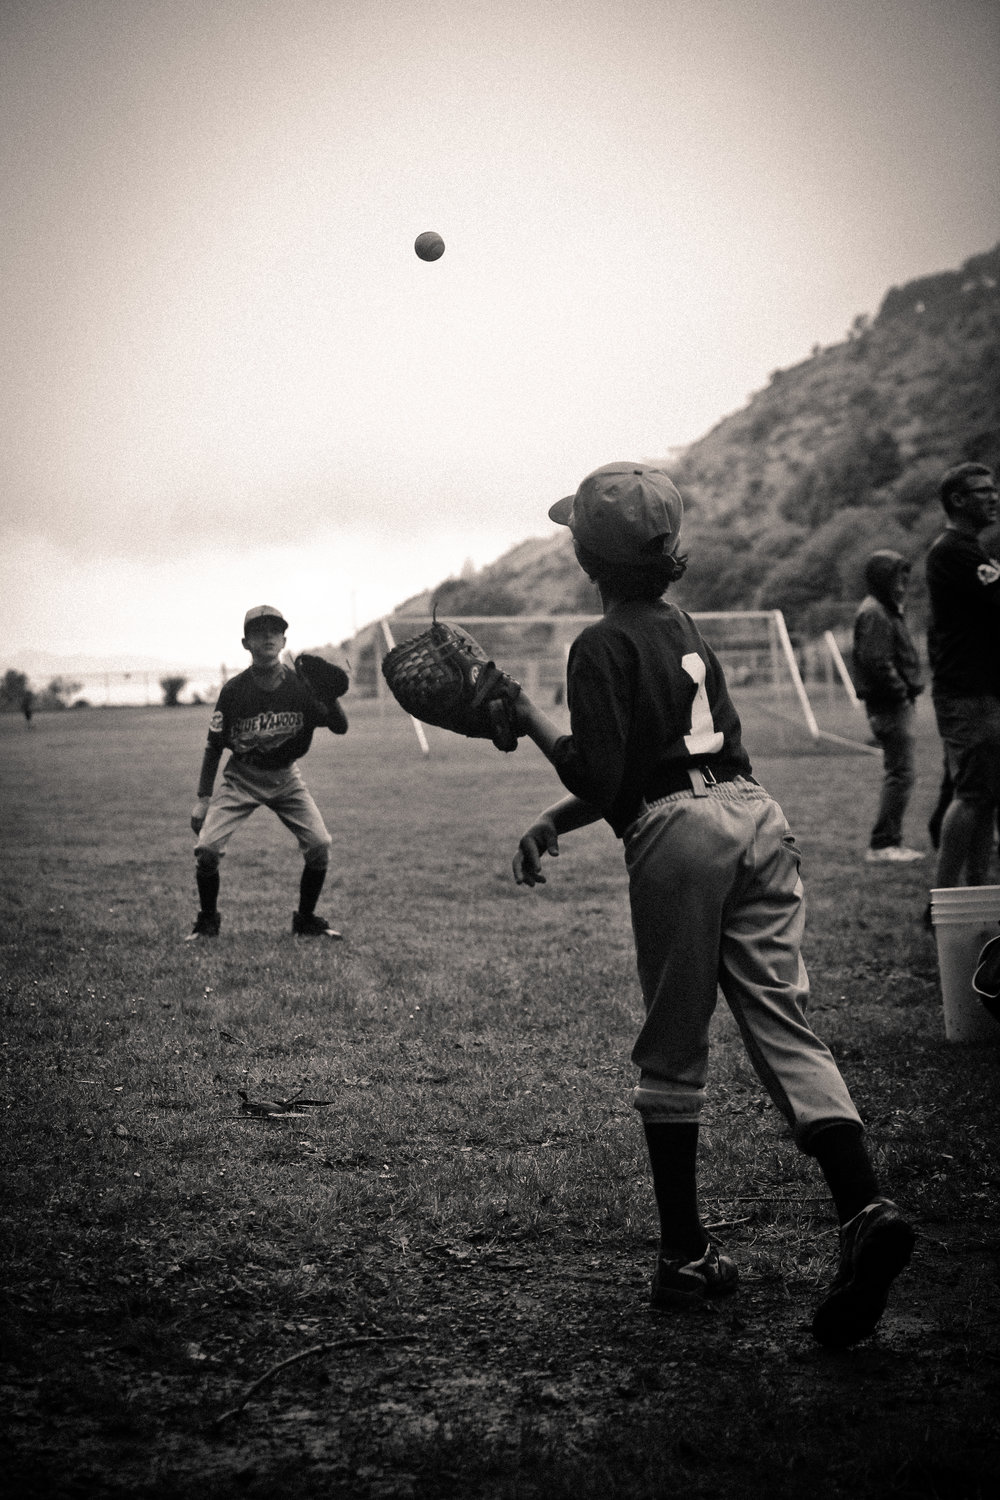 Twilight Baseball ©Lisa Berman